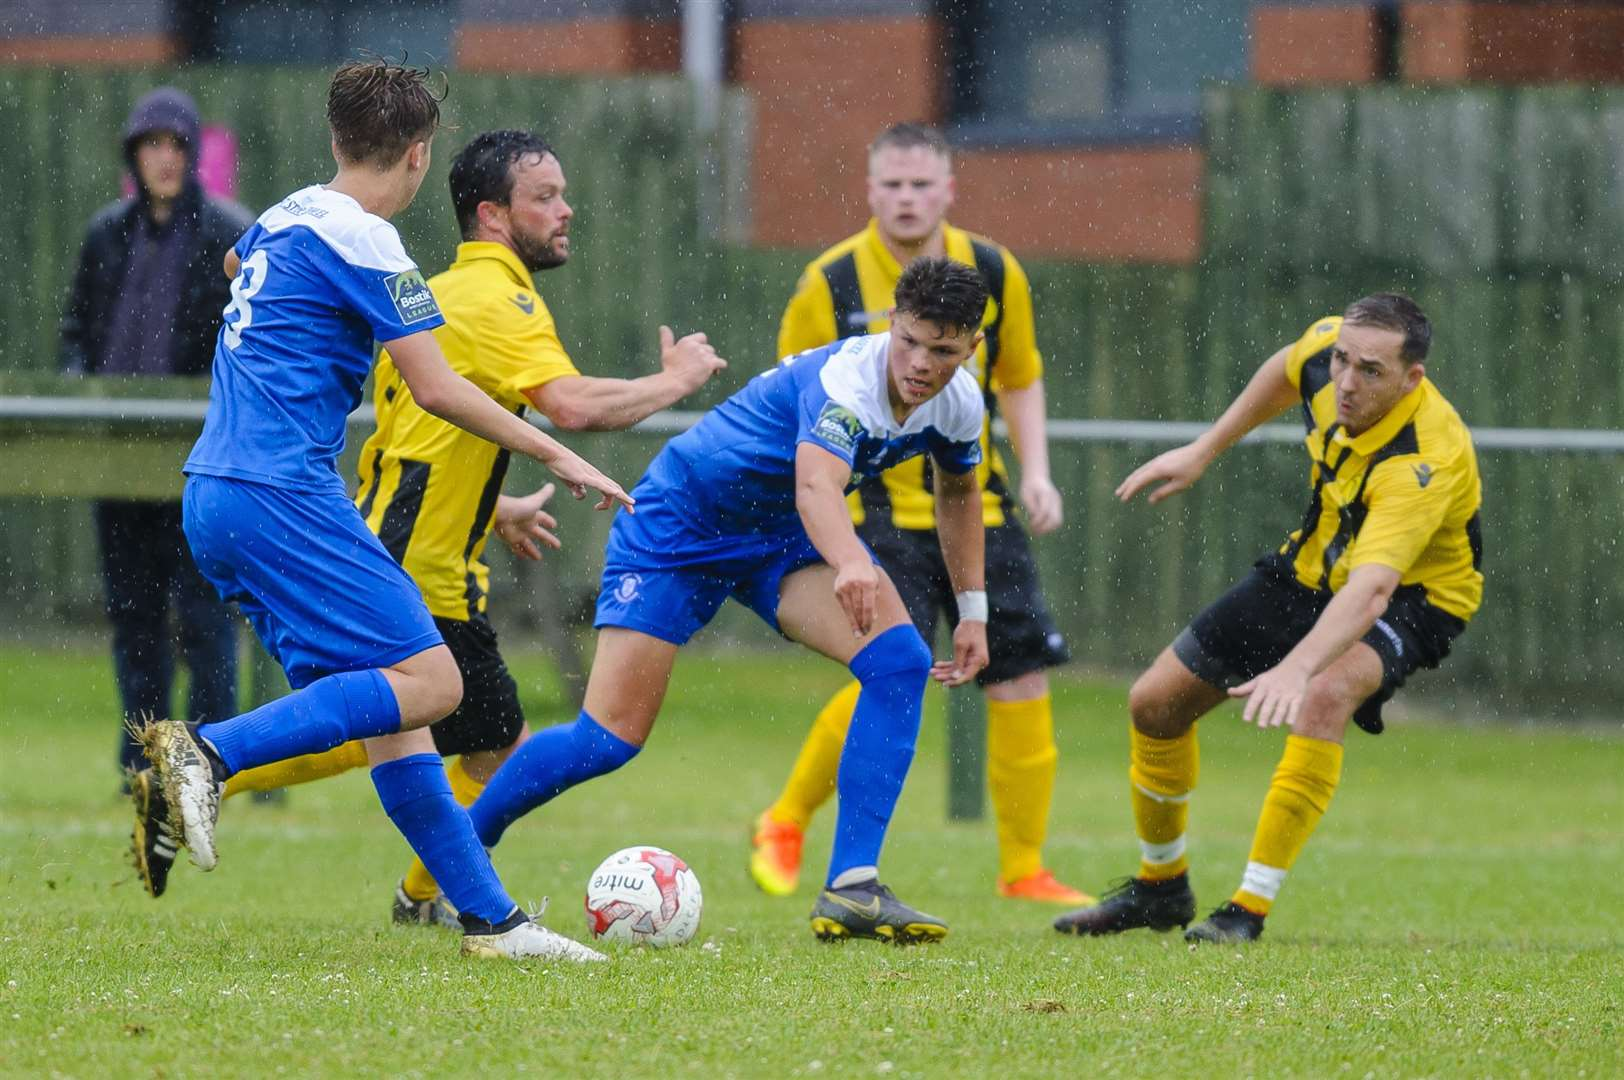 Football action from Debenham LC v Bury Town..Debenham players LEFT TO RIGHT – KEVIN BARKER, MAX HUTCHINGS, MICHAEL VELZIAN..Picture: Mark Bullimore Photography. (13683638)